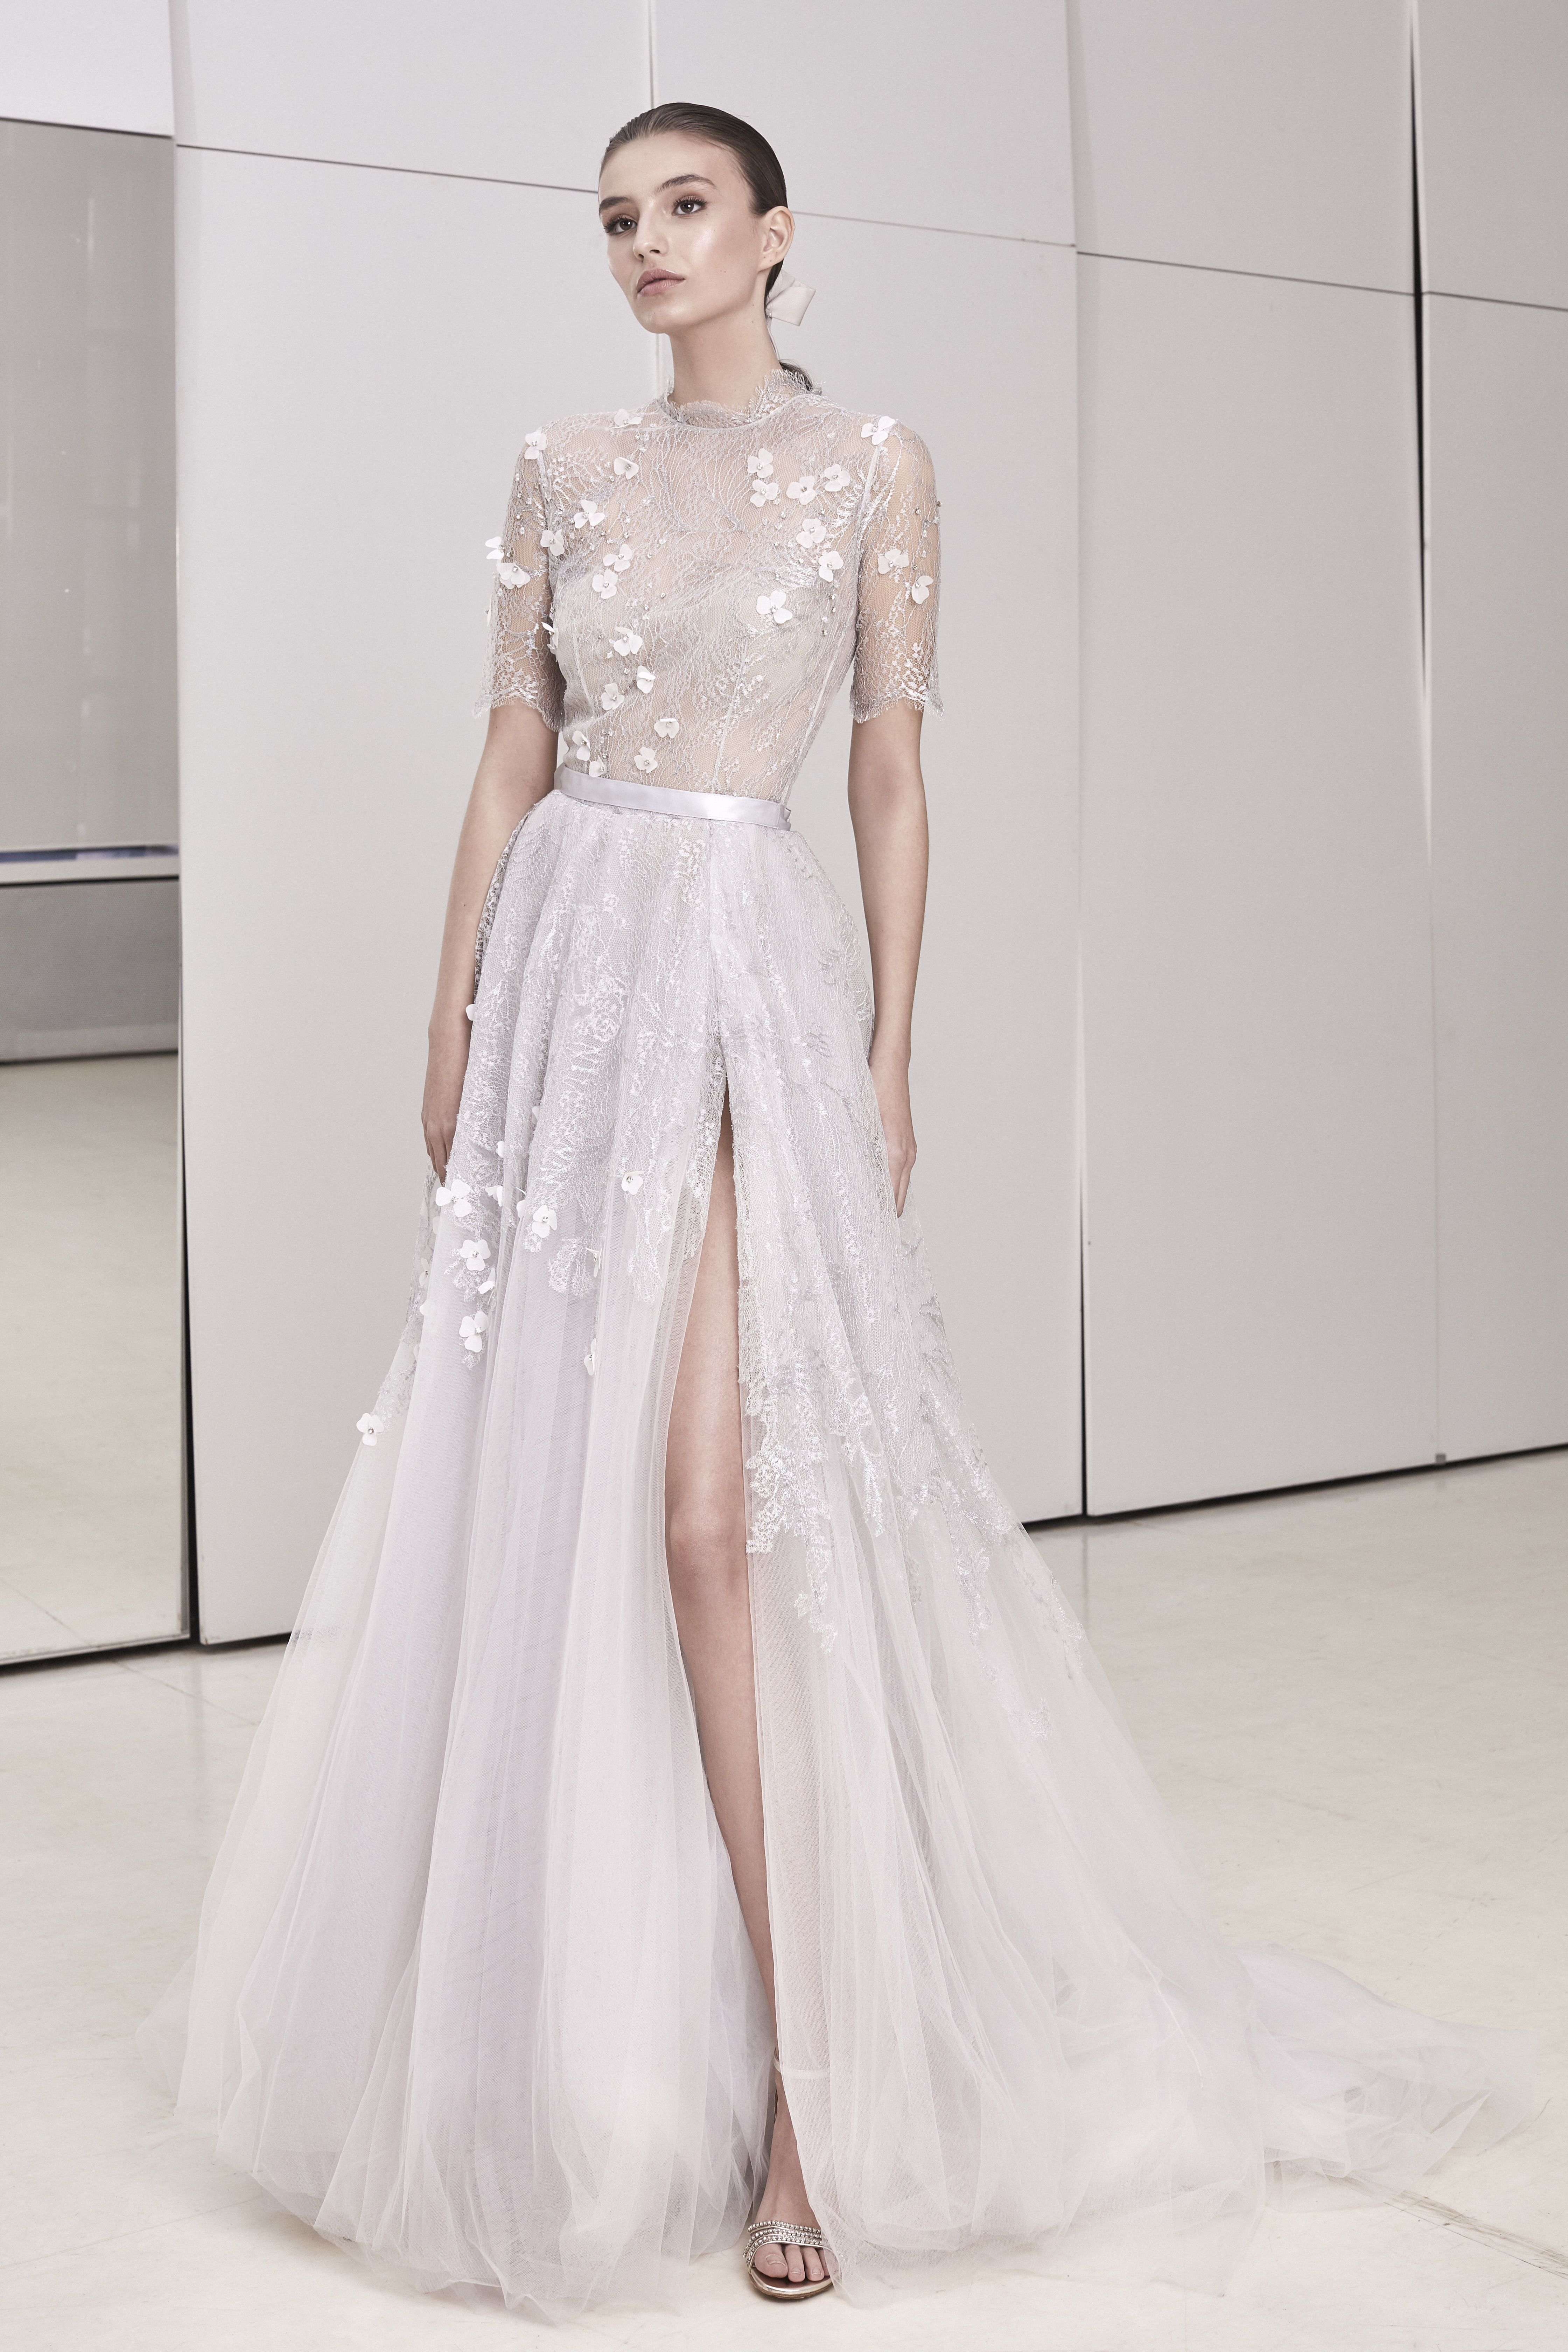 Bachelorette Parties Dress Designs Bridal Collection Dress Neck Designs Bridal Collec In 2020 Haute Couture Wedding Dress Valentino Bridal Indian Wedding Gowns